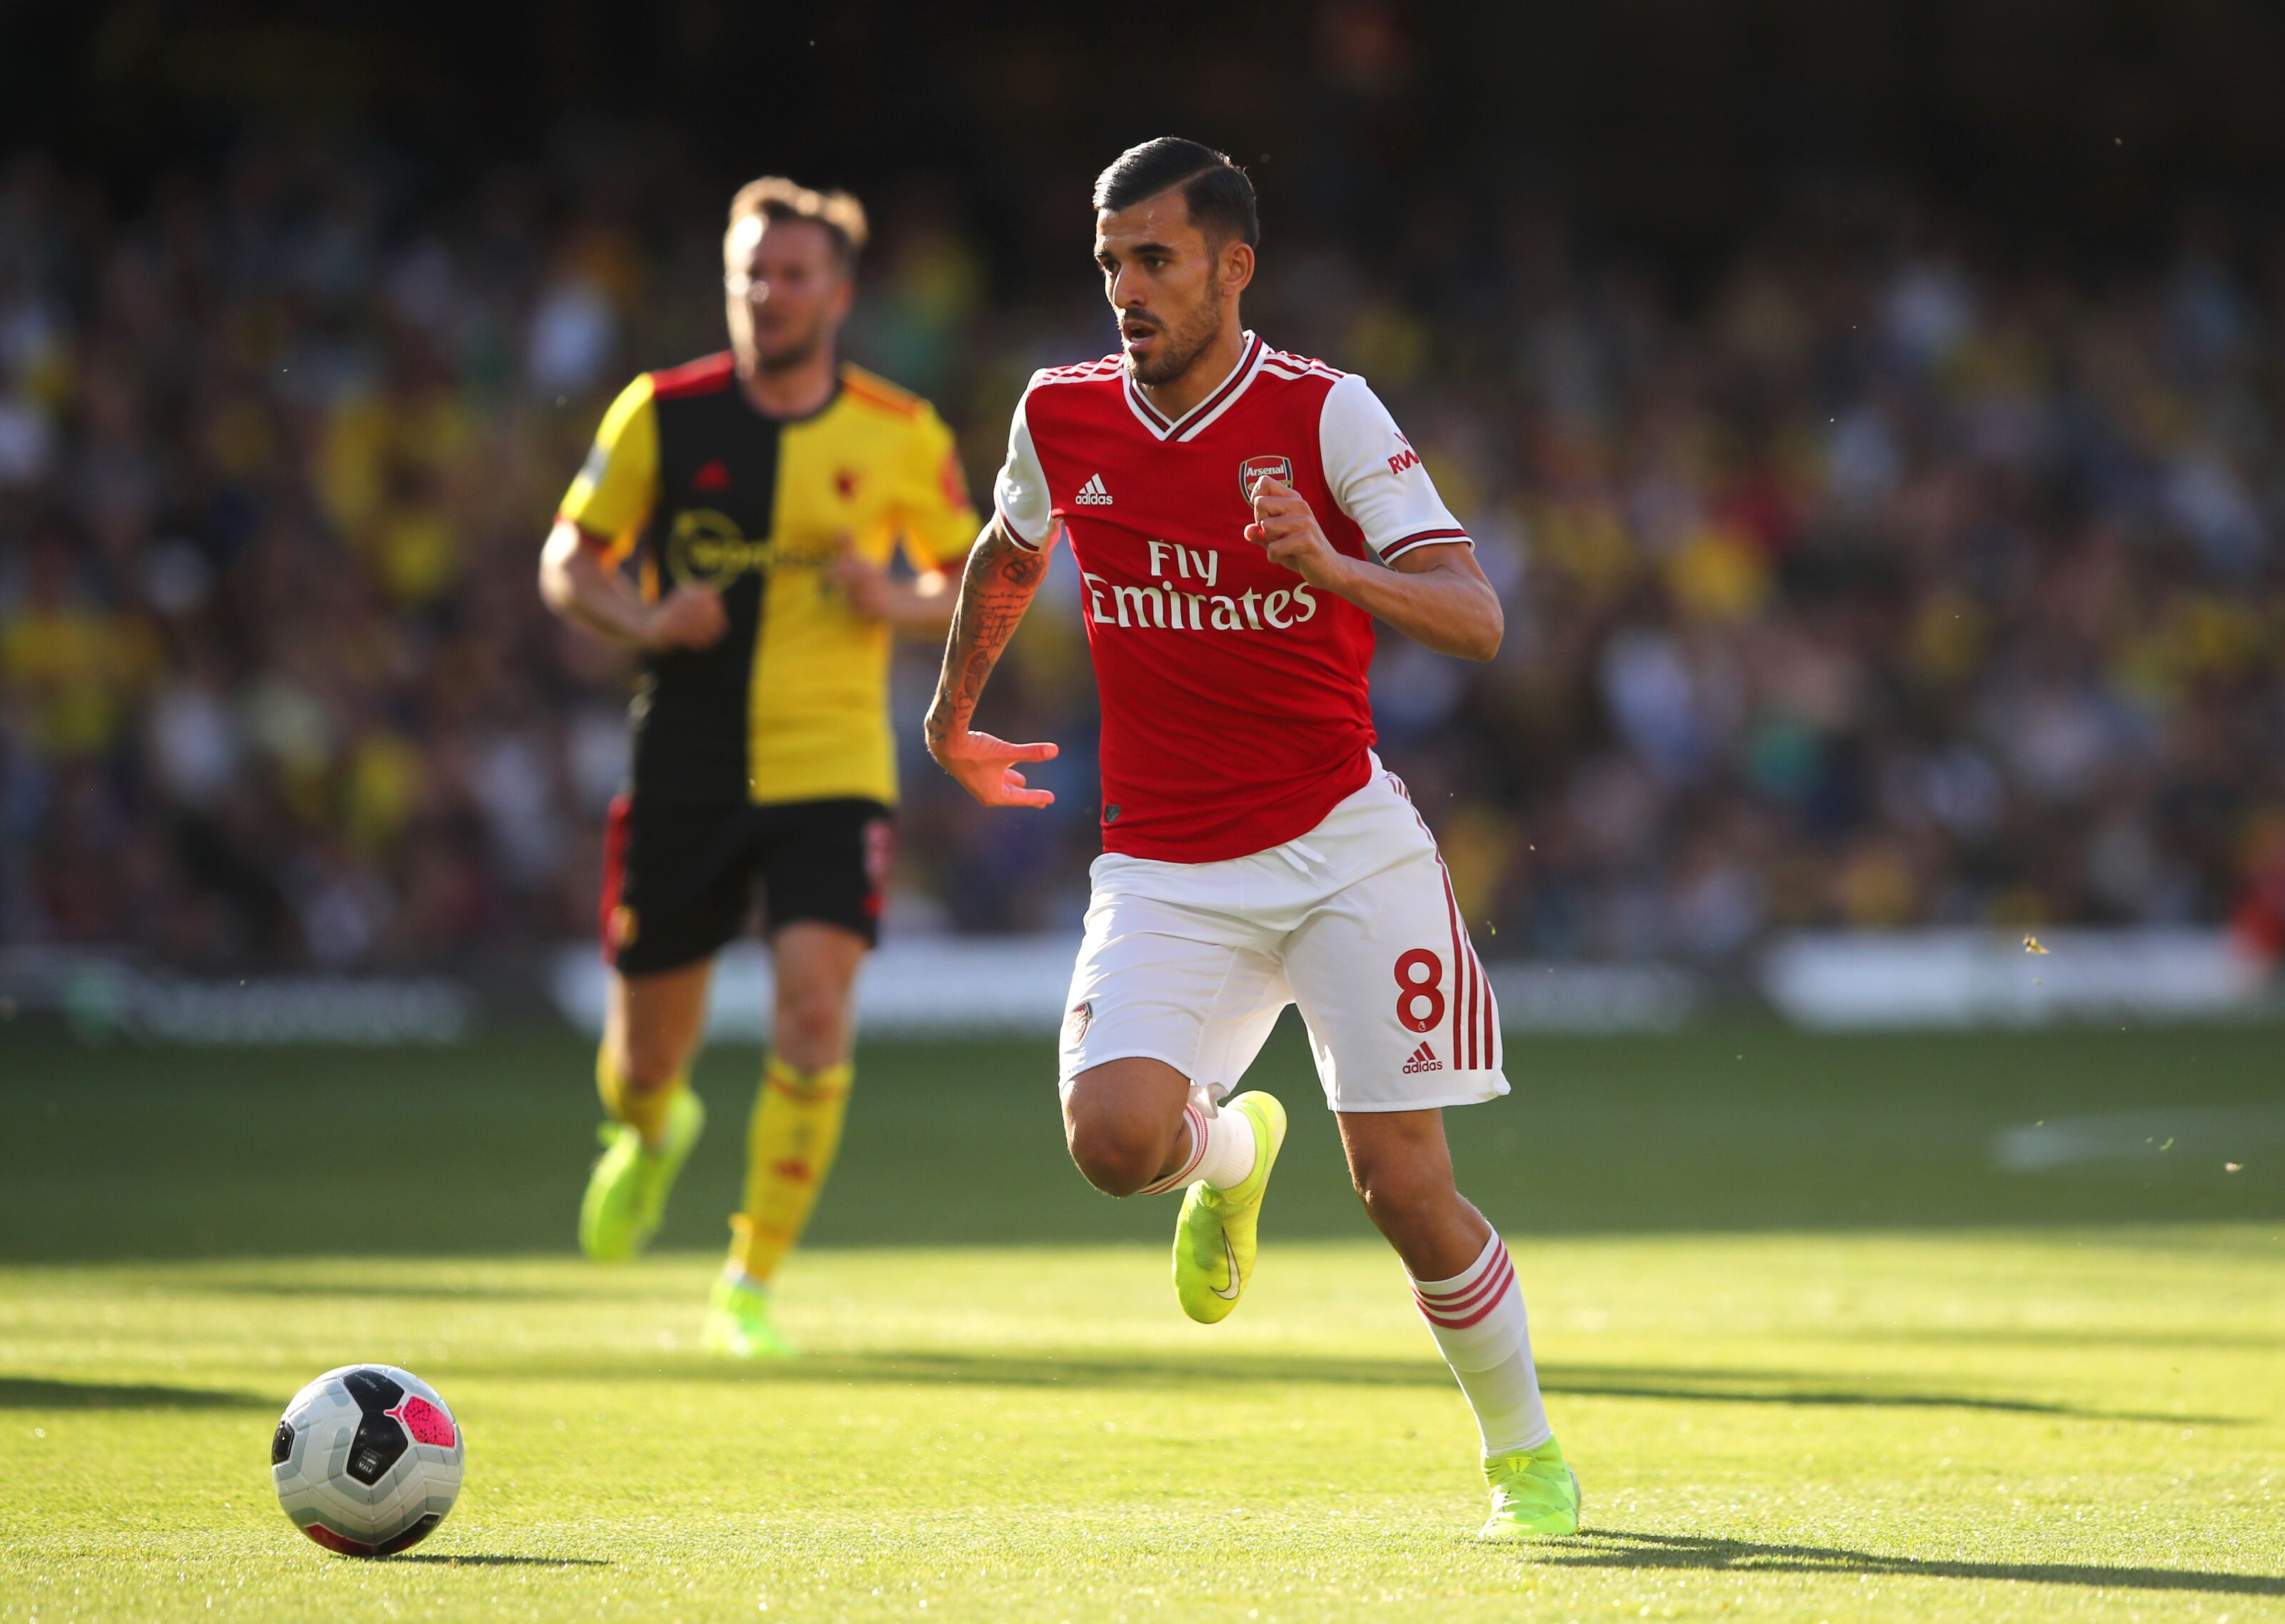 Arsenal: Dani Ceballos has that quality no one else seems to have